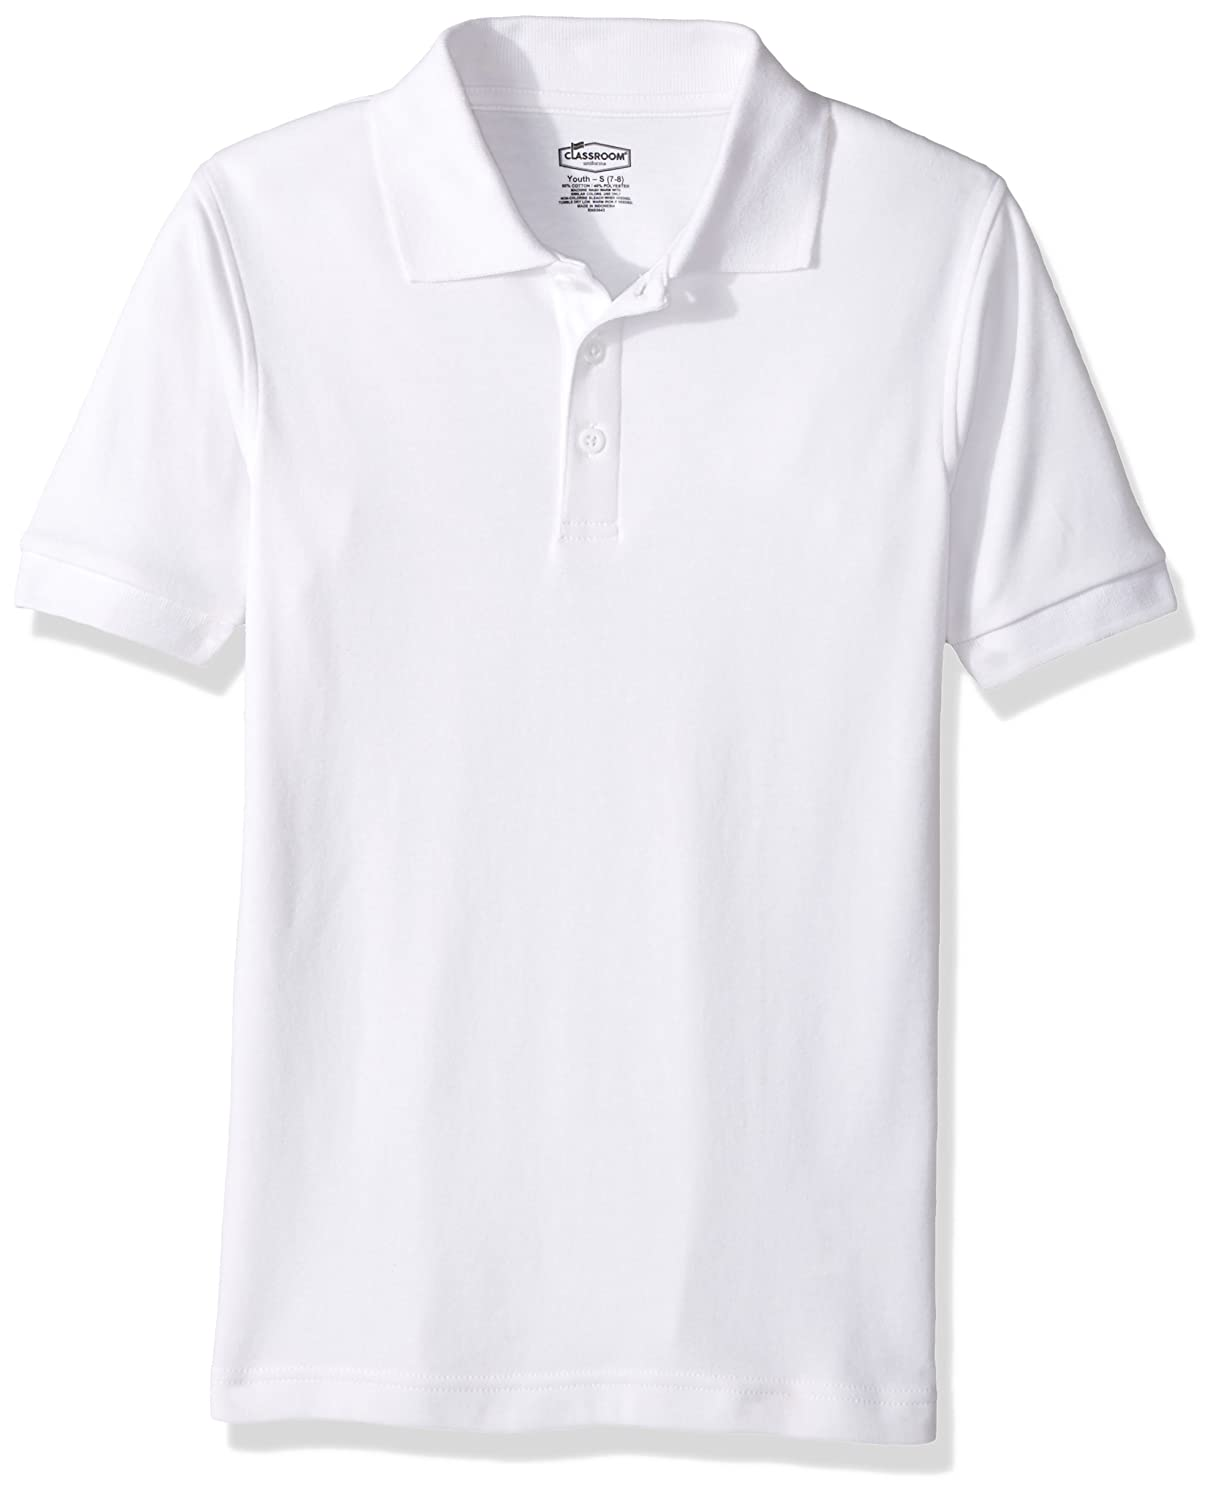 Classroom Kids Little Boys' Uniform Short Sleeve Interlock Polo 58912